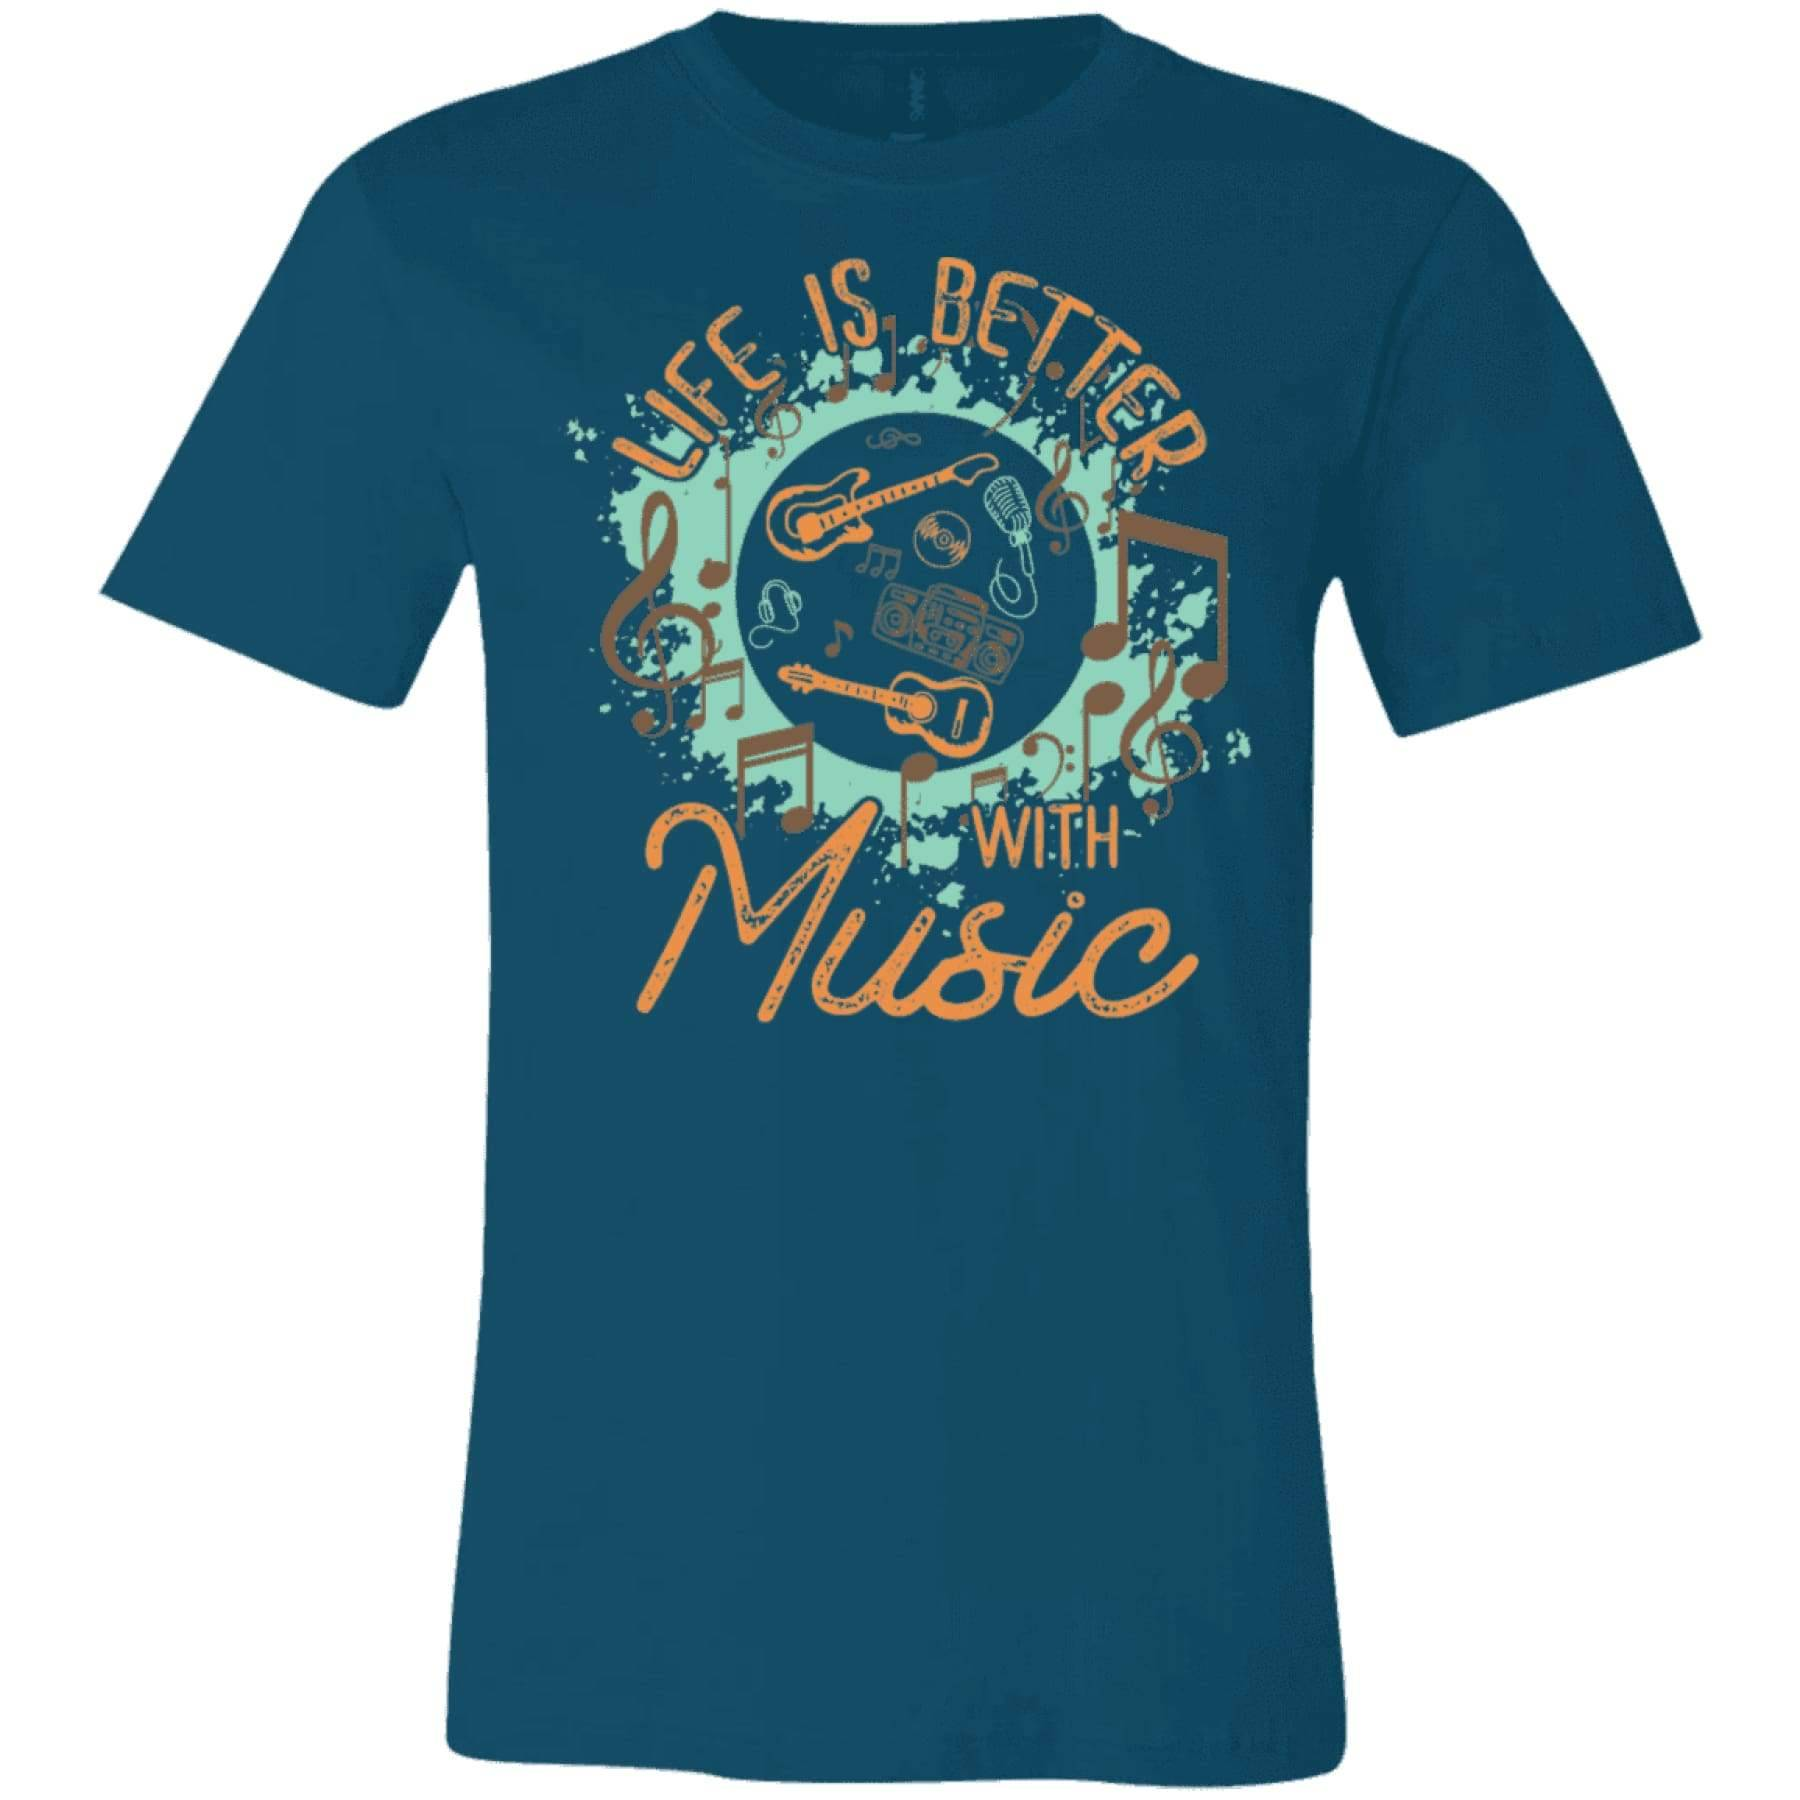 Life is Better With Music Tee.